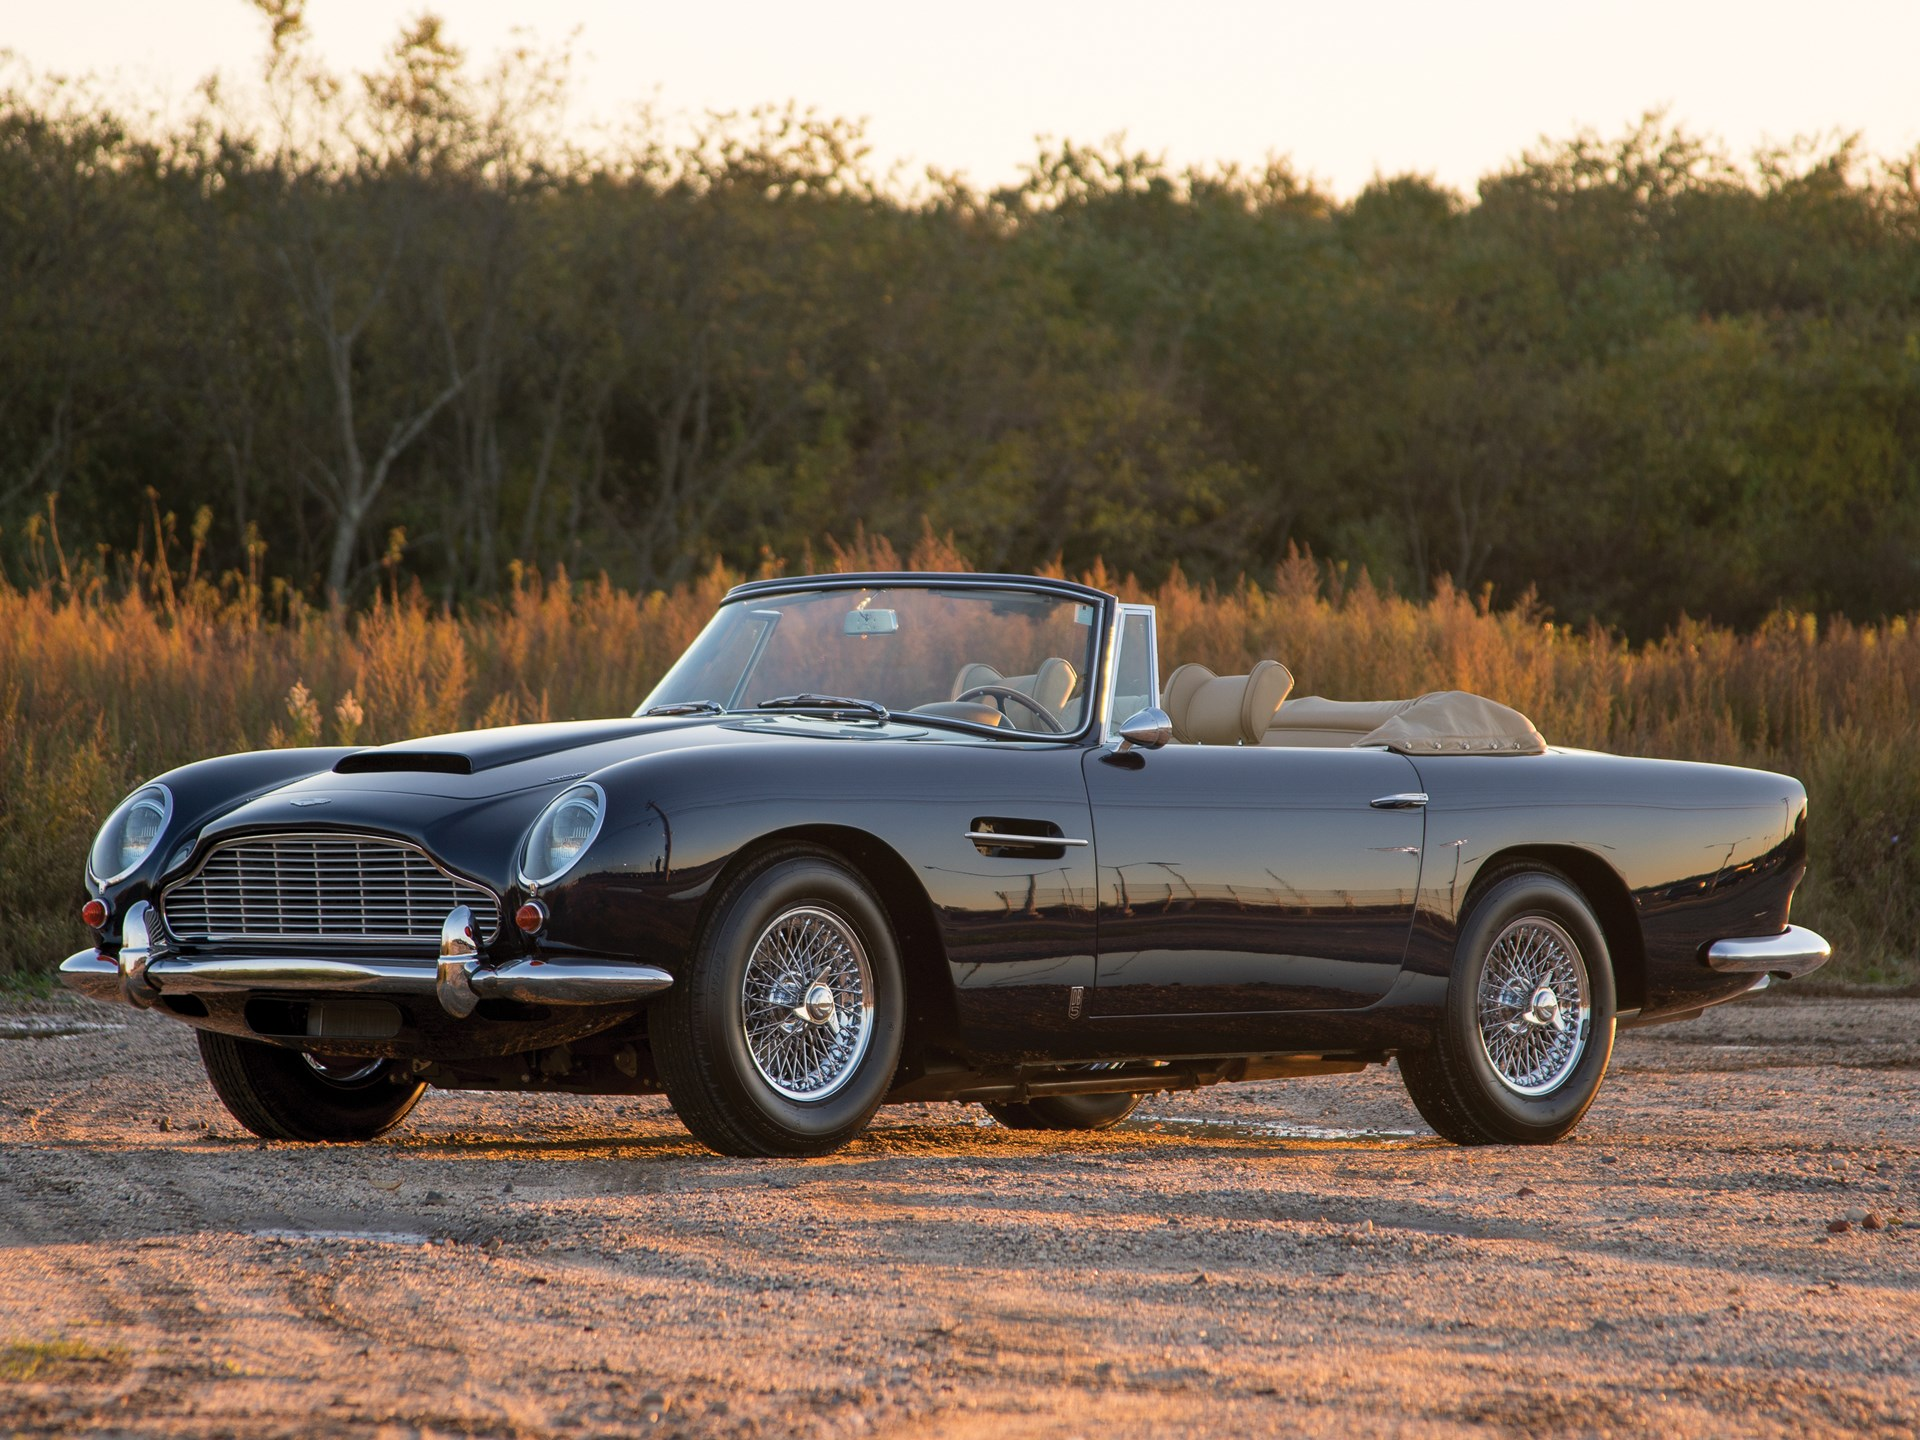 rm sotheby's - 1965 aston martin db5 convertible | new york - icons 2017